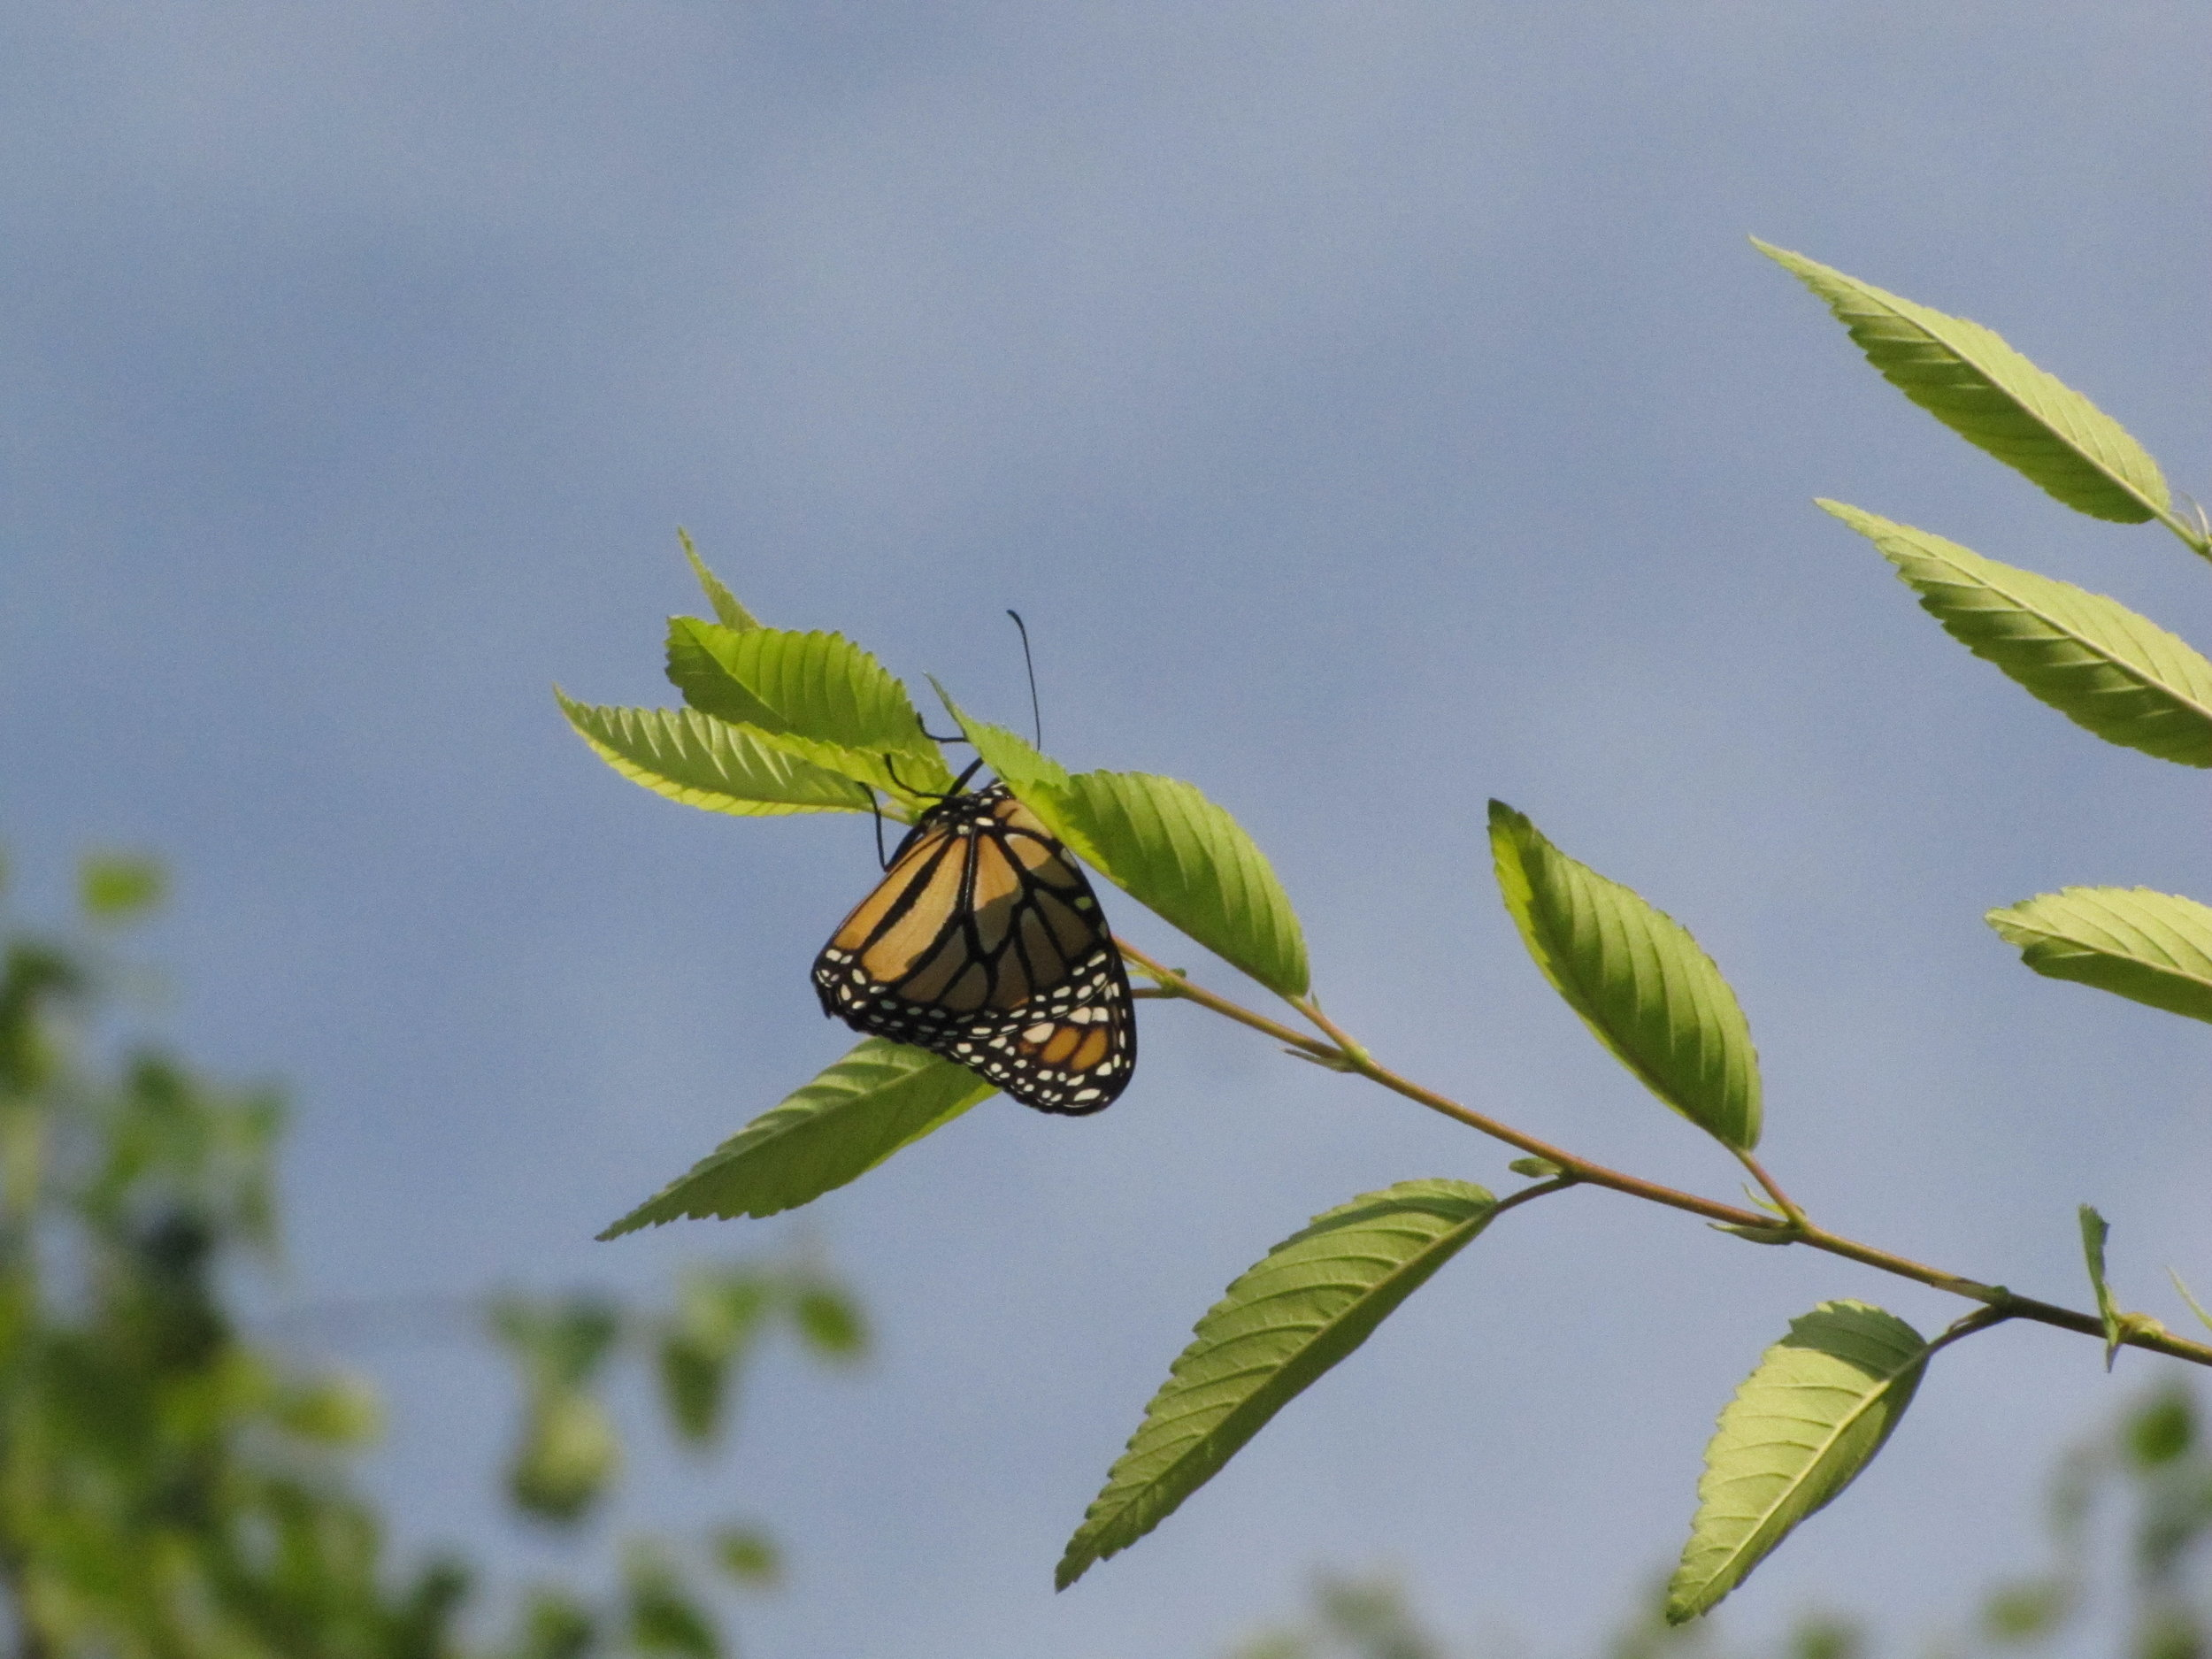 One of the two released Monarchs.This is the female that choose to hang around for a while.